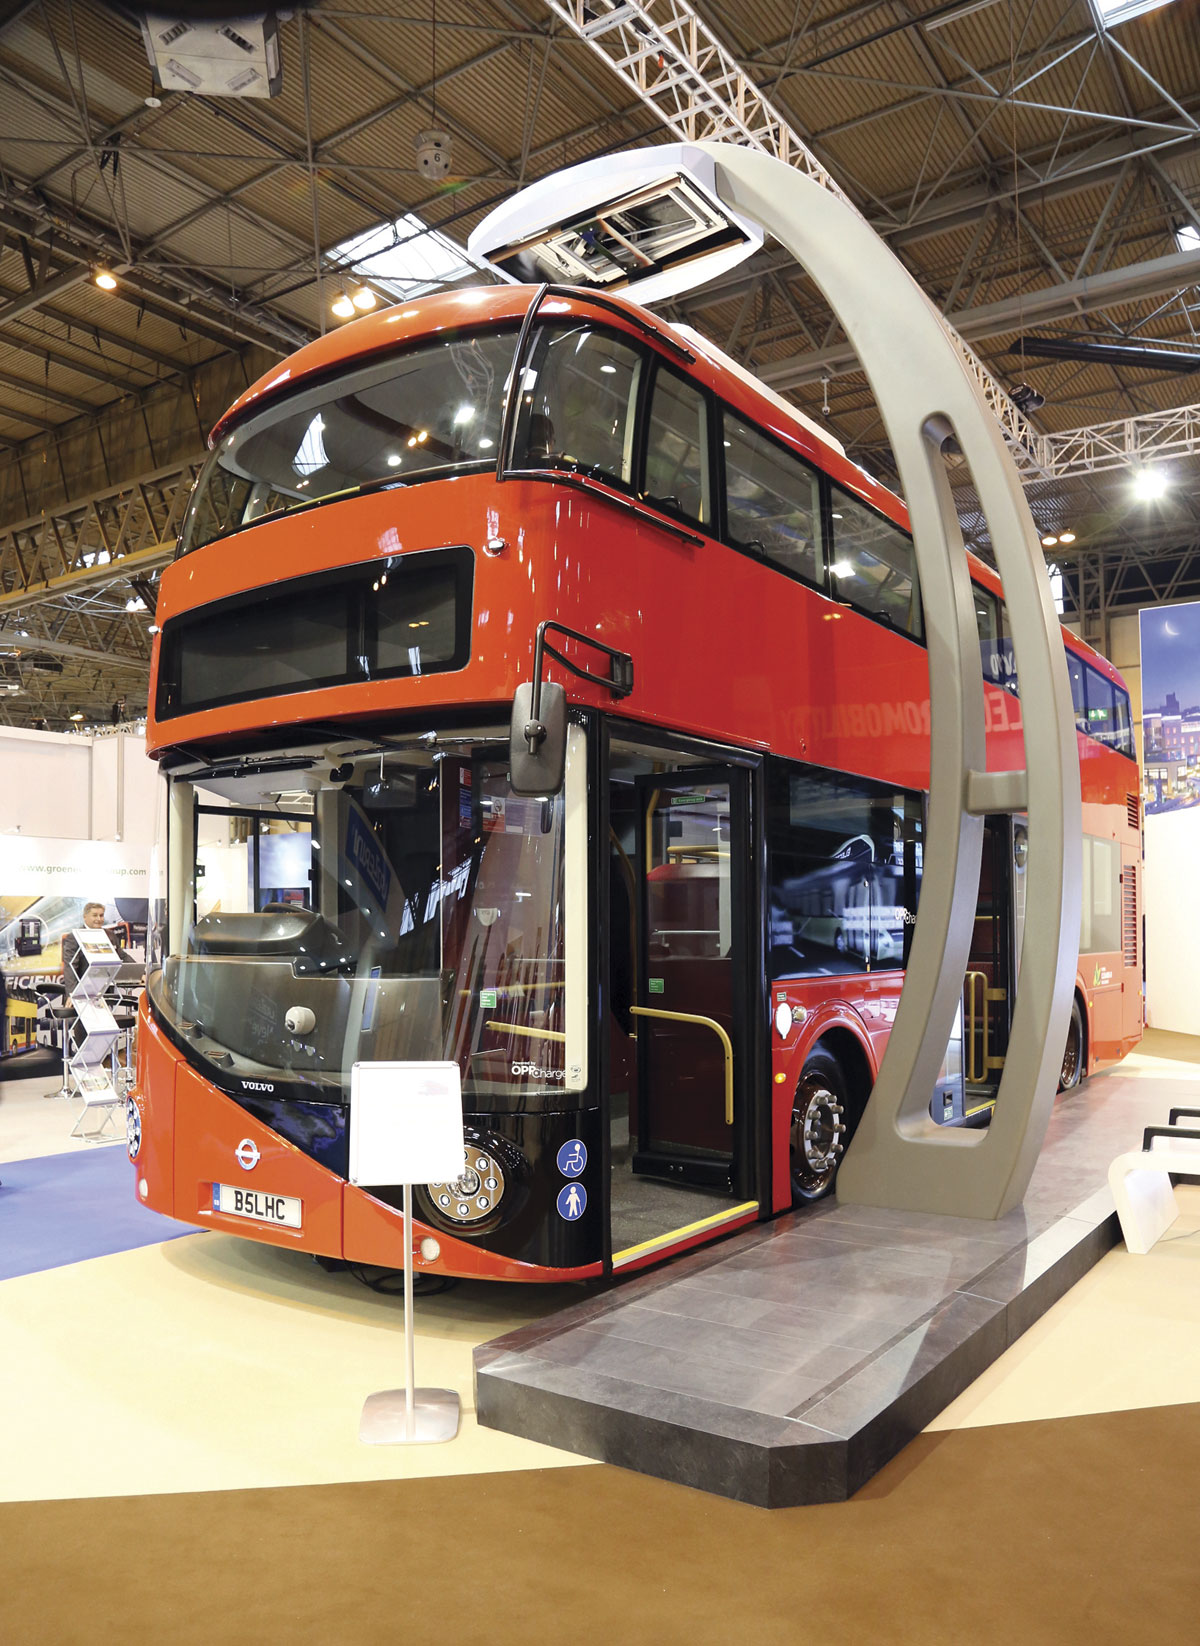 Volvo B5LH C hybrid with with opportunity charging